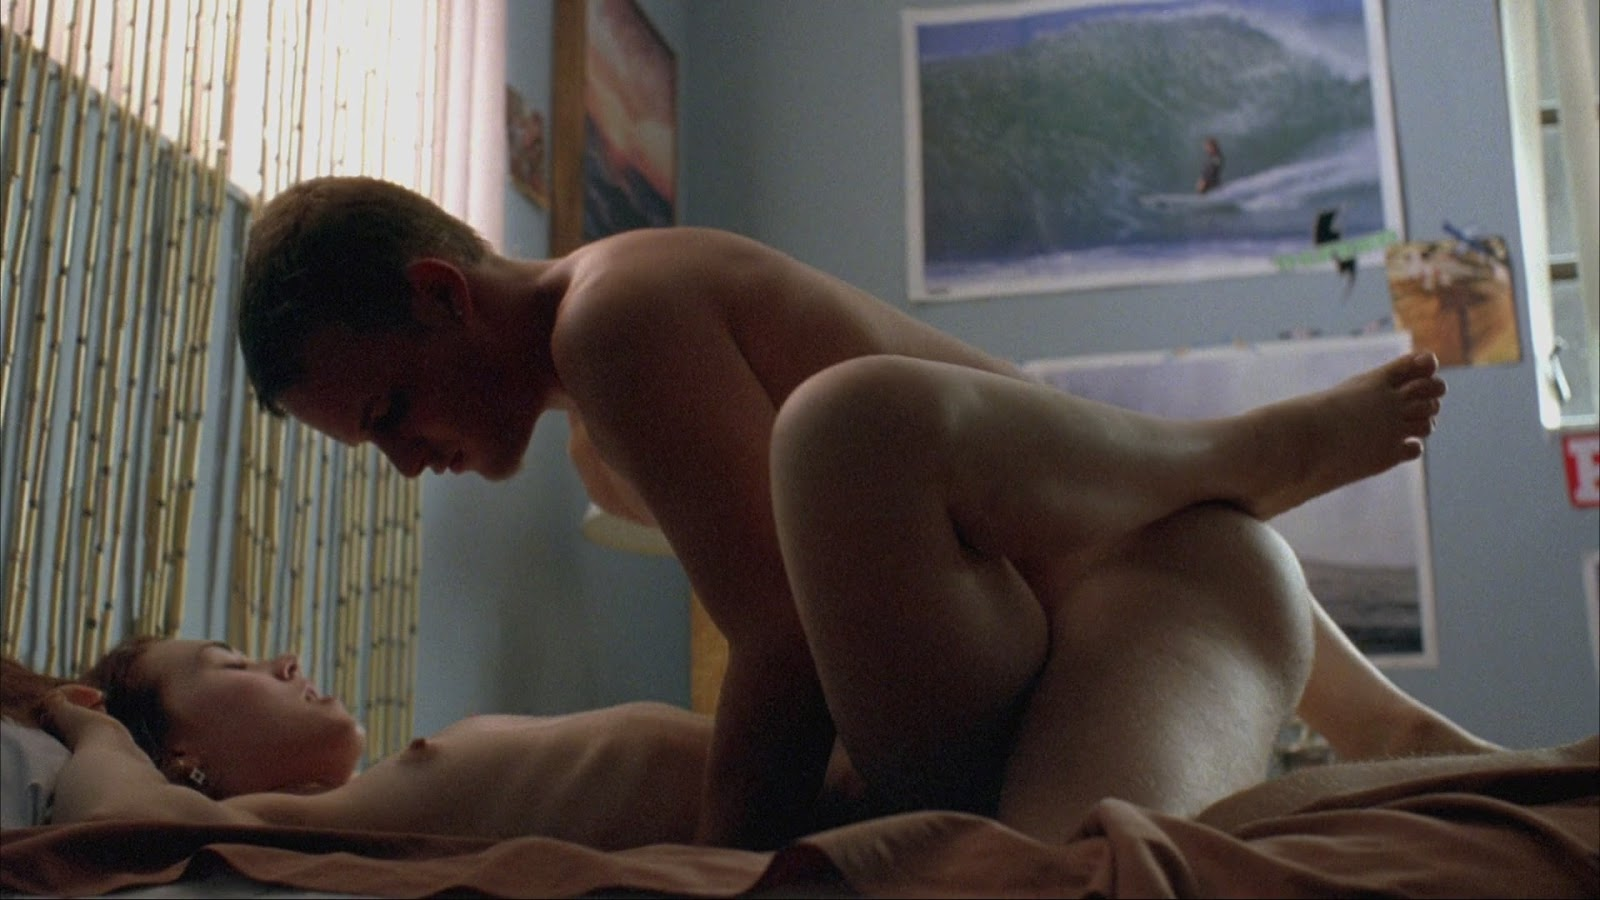 brad renfro sex scene in bully